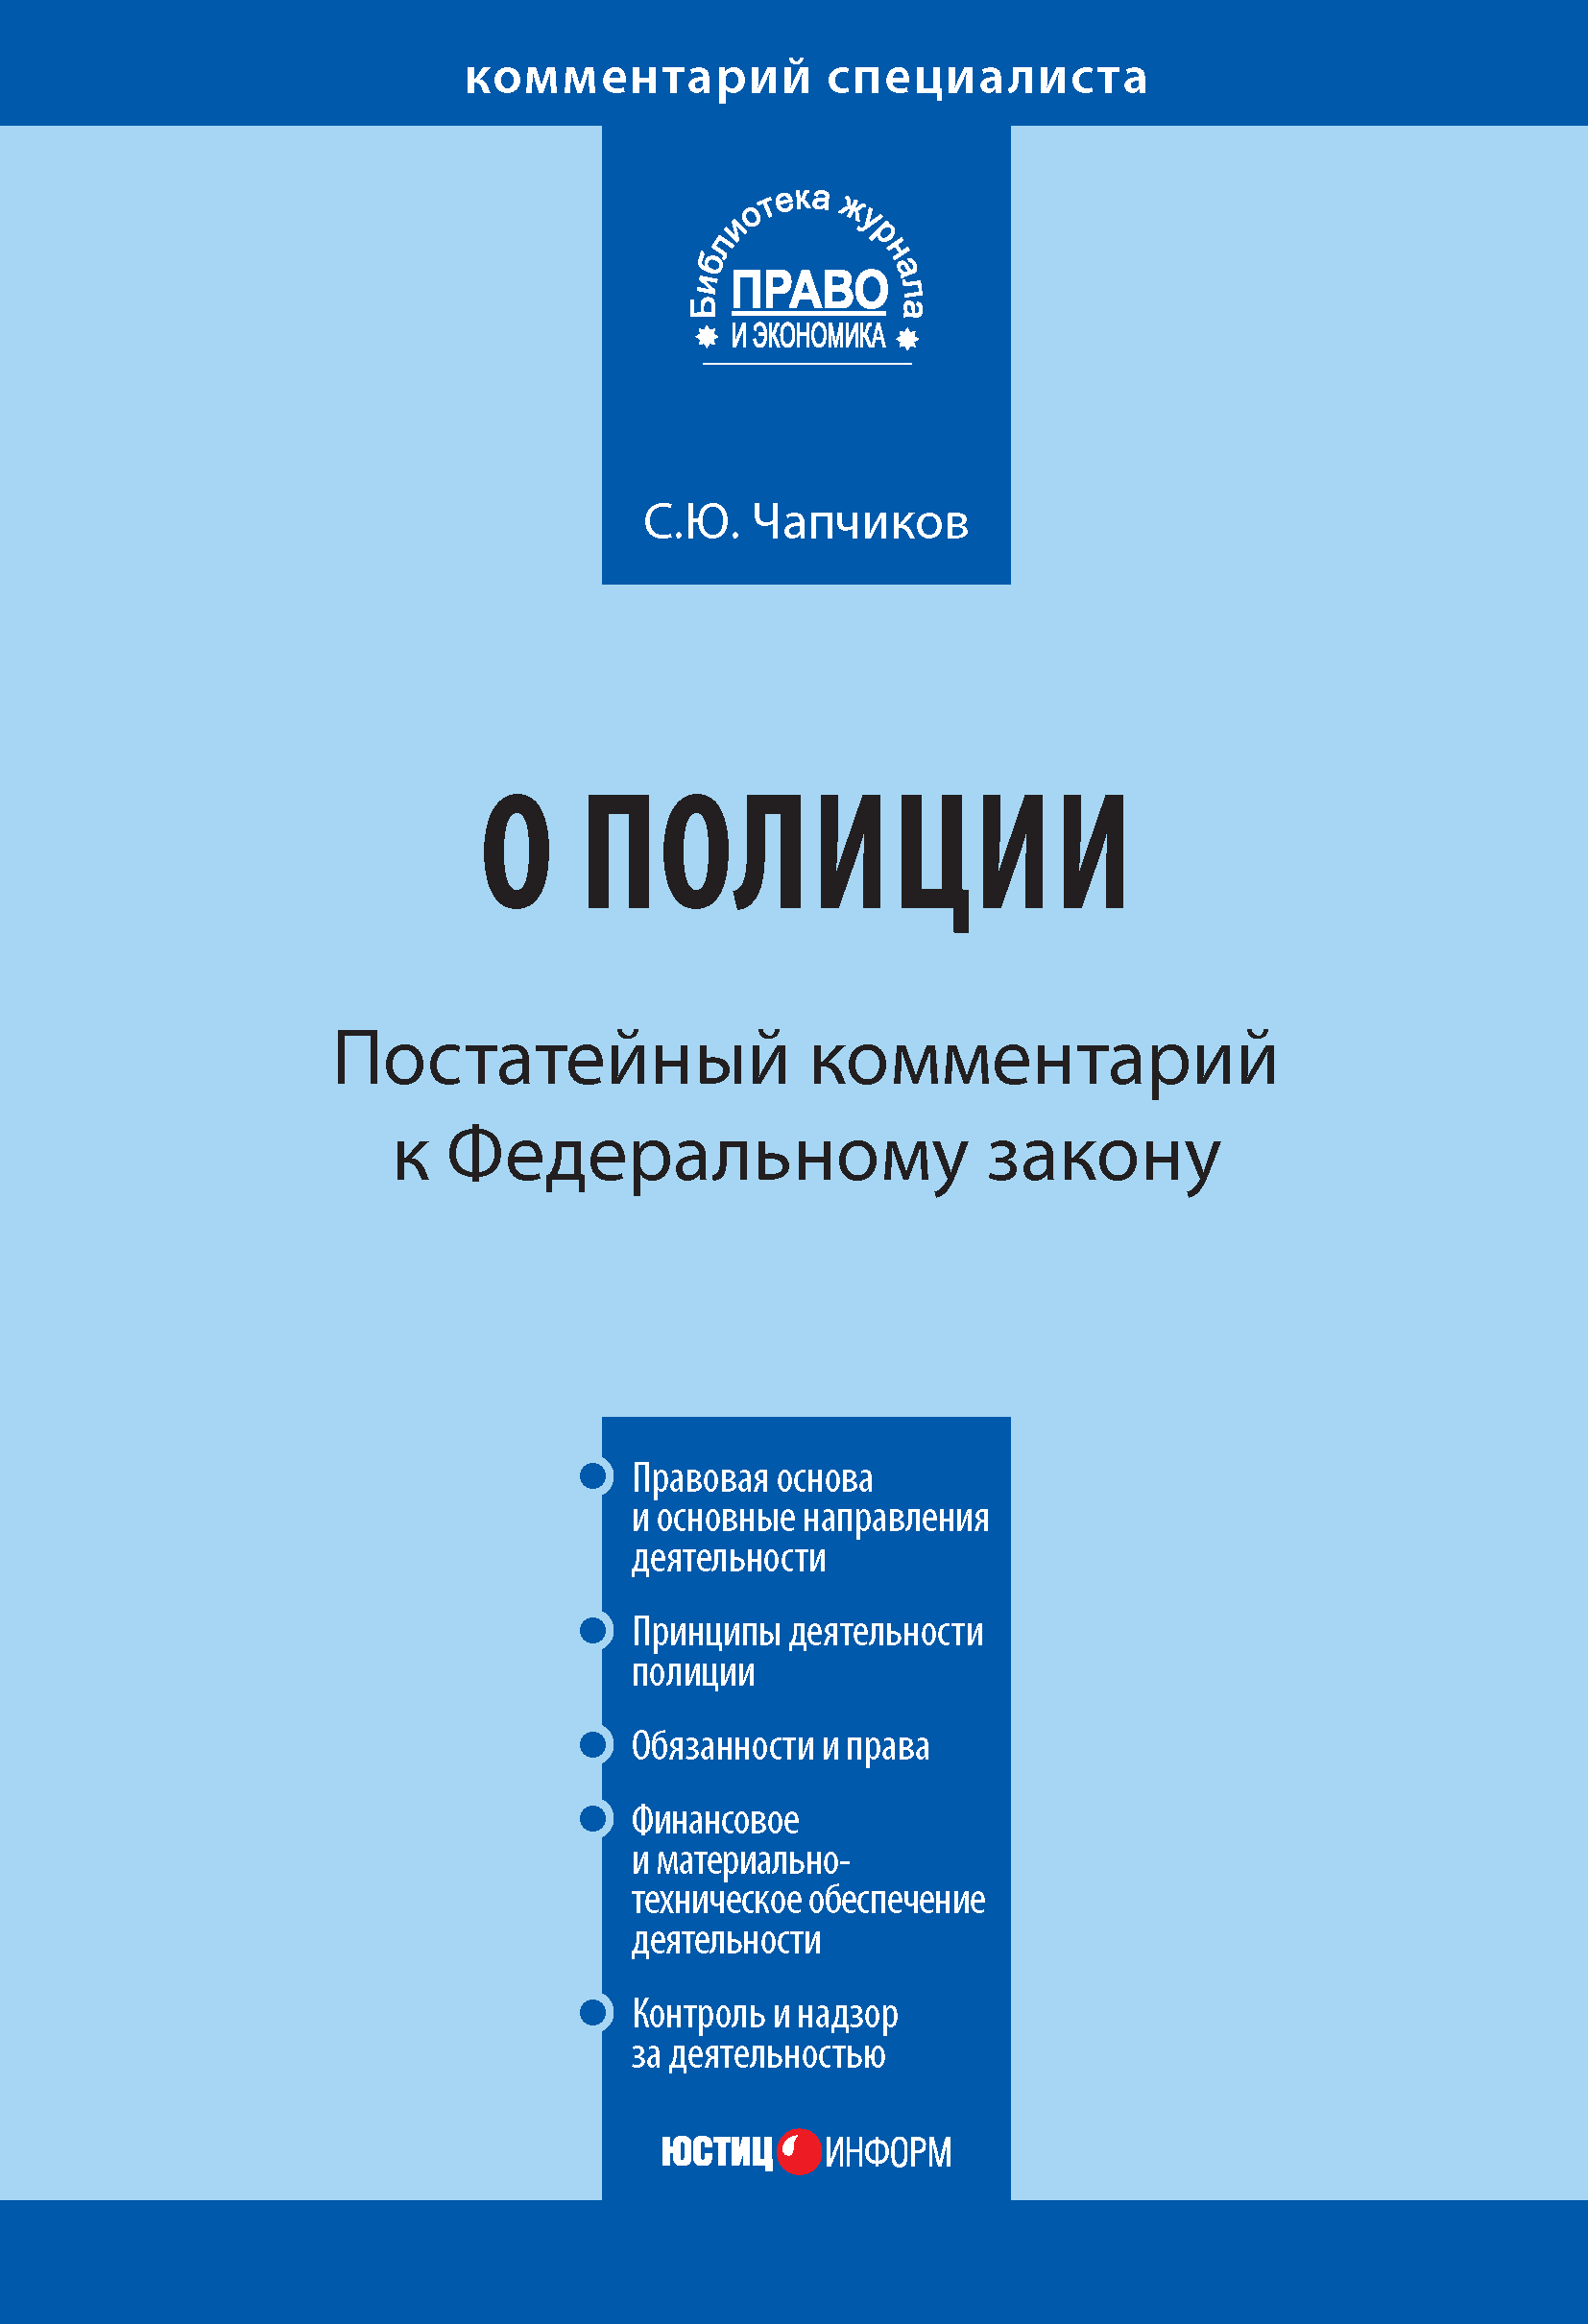 С. Ю. Чапчиков Комментарий к Федеральному закону «О полиции» (постатейный) electric longboard professional skateboard street road skate board 4 wheel long board 7 layers maple 1 layer bamboo page 9